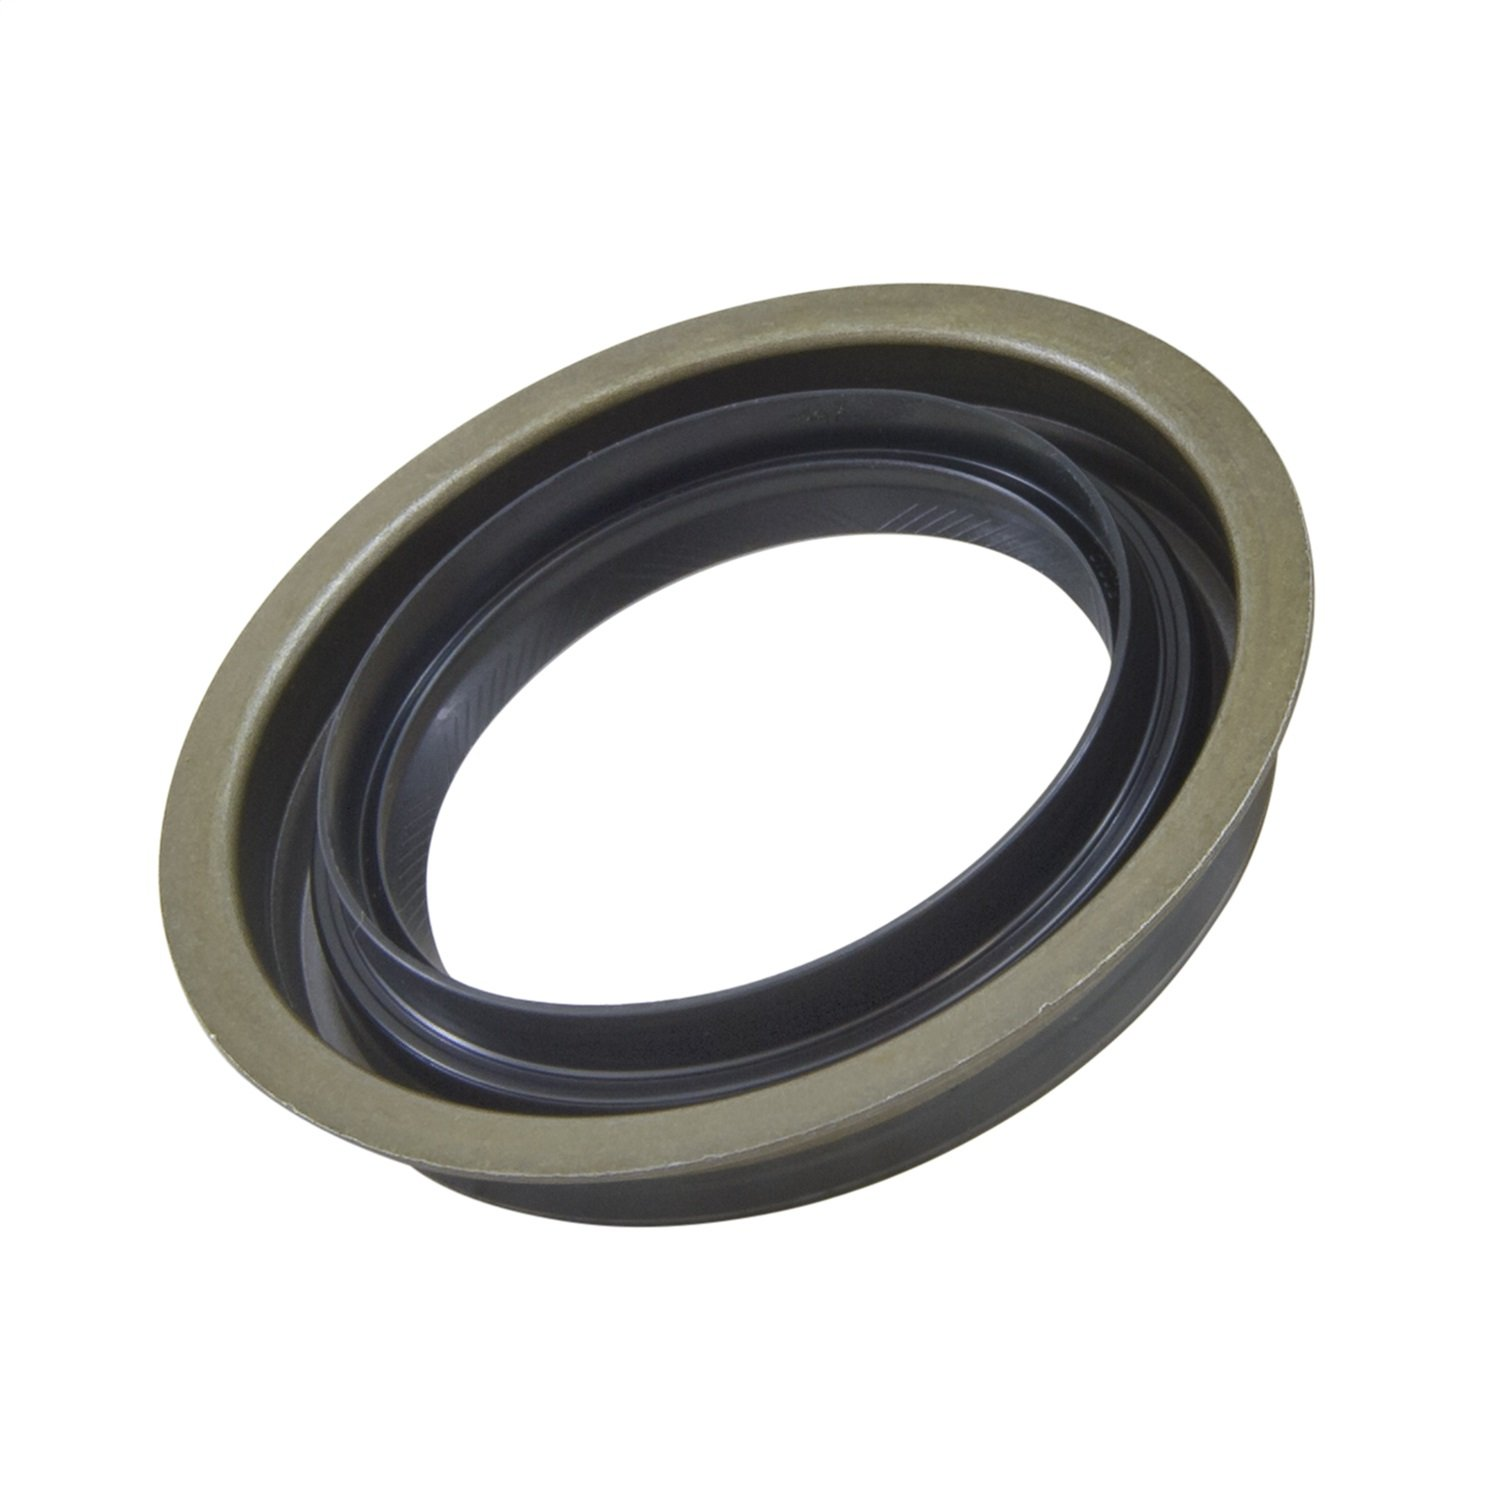 Yukon Gear & Axle (YMSC1008) Solid Axle Pinion Seal for Chrysler 9.25 AAM Differential